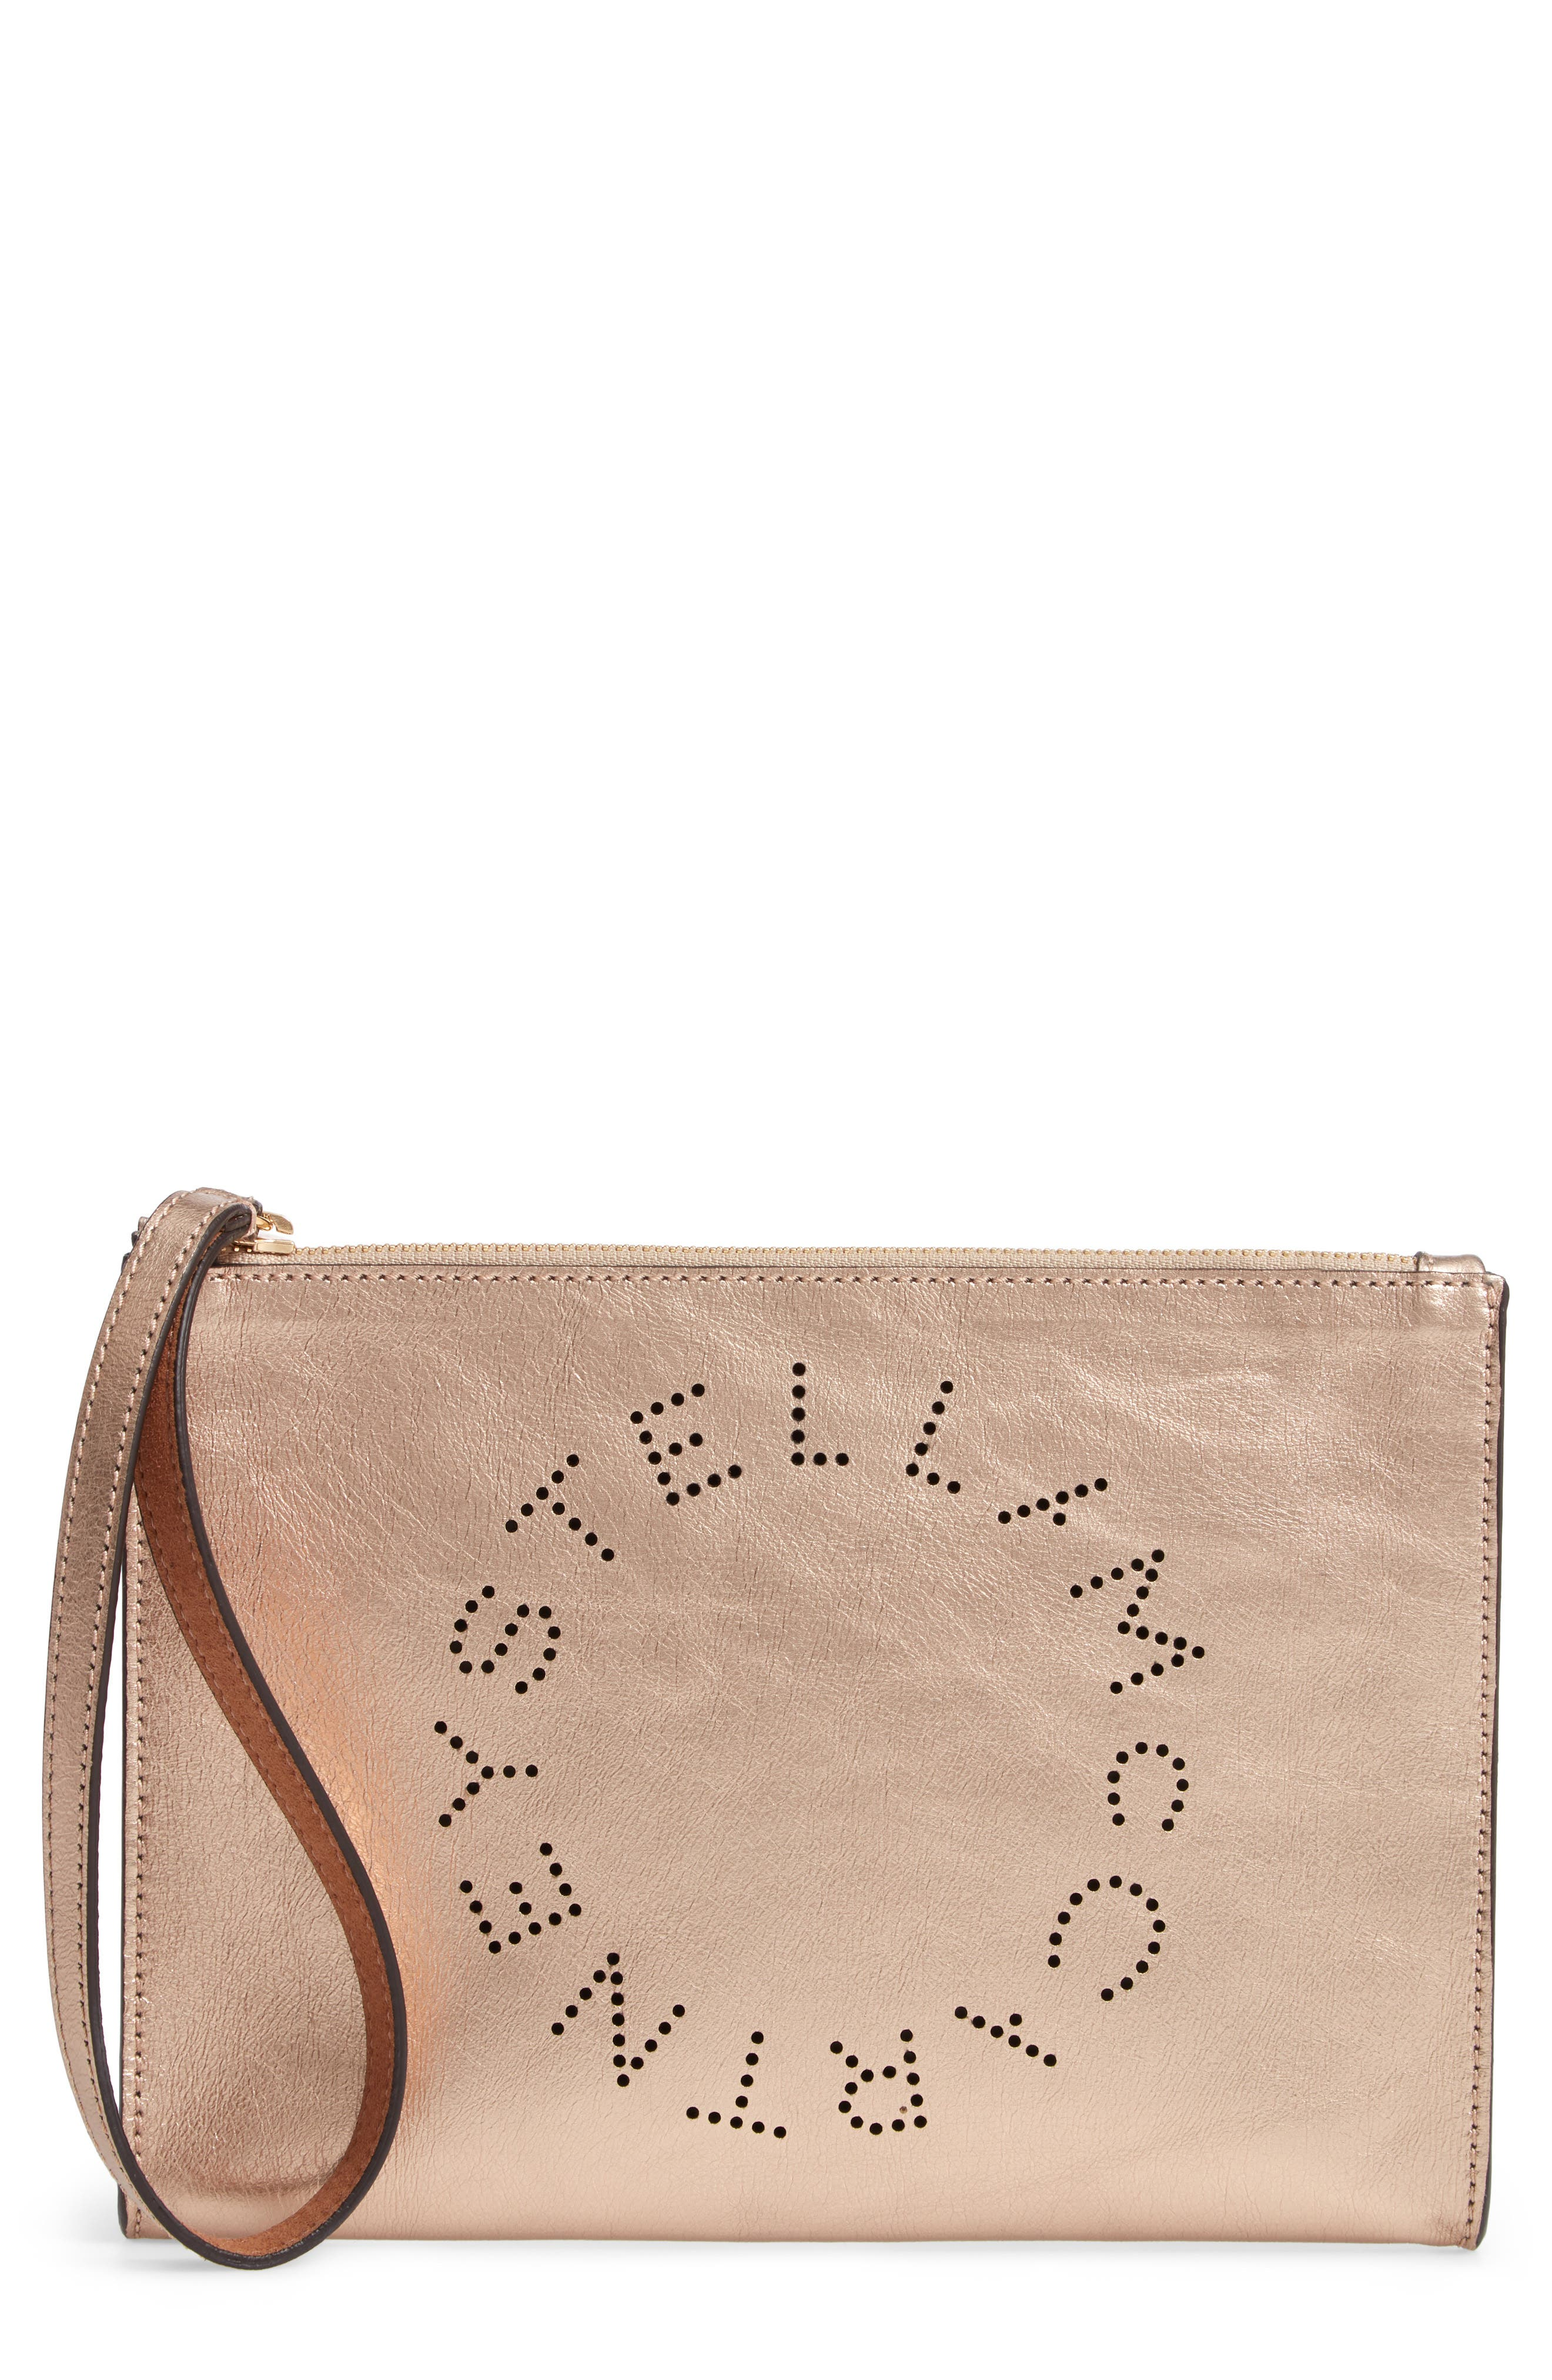 Metallic Faux Nappa Leather Wristlet Clutch, Main, color, ROSE GOLD